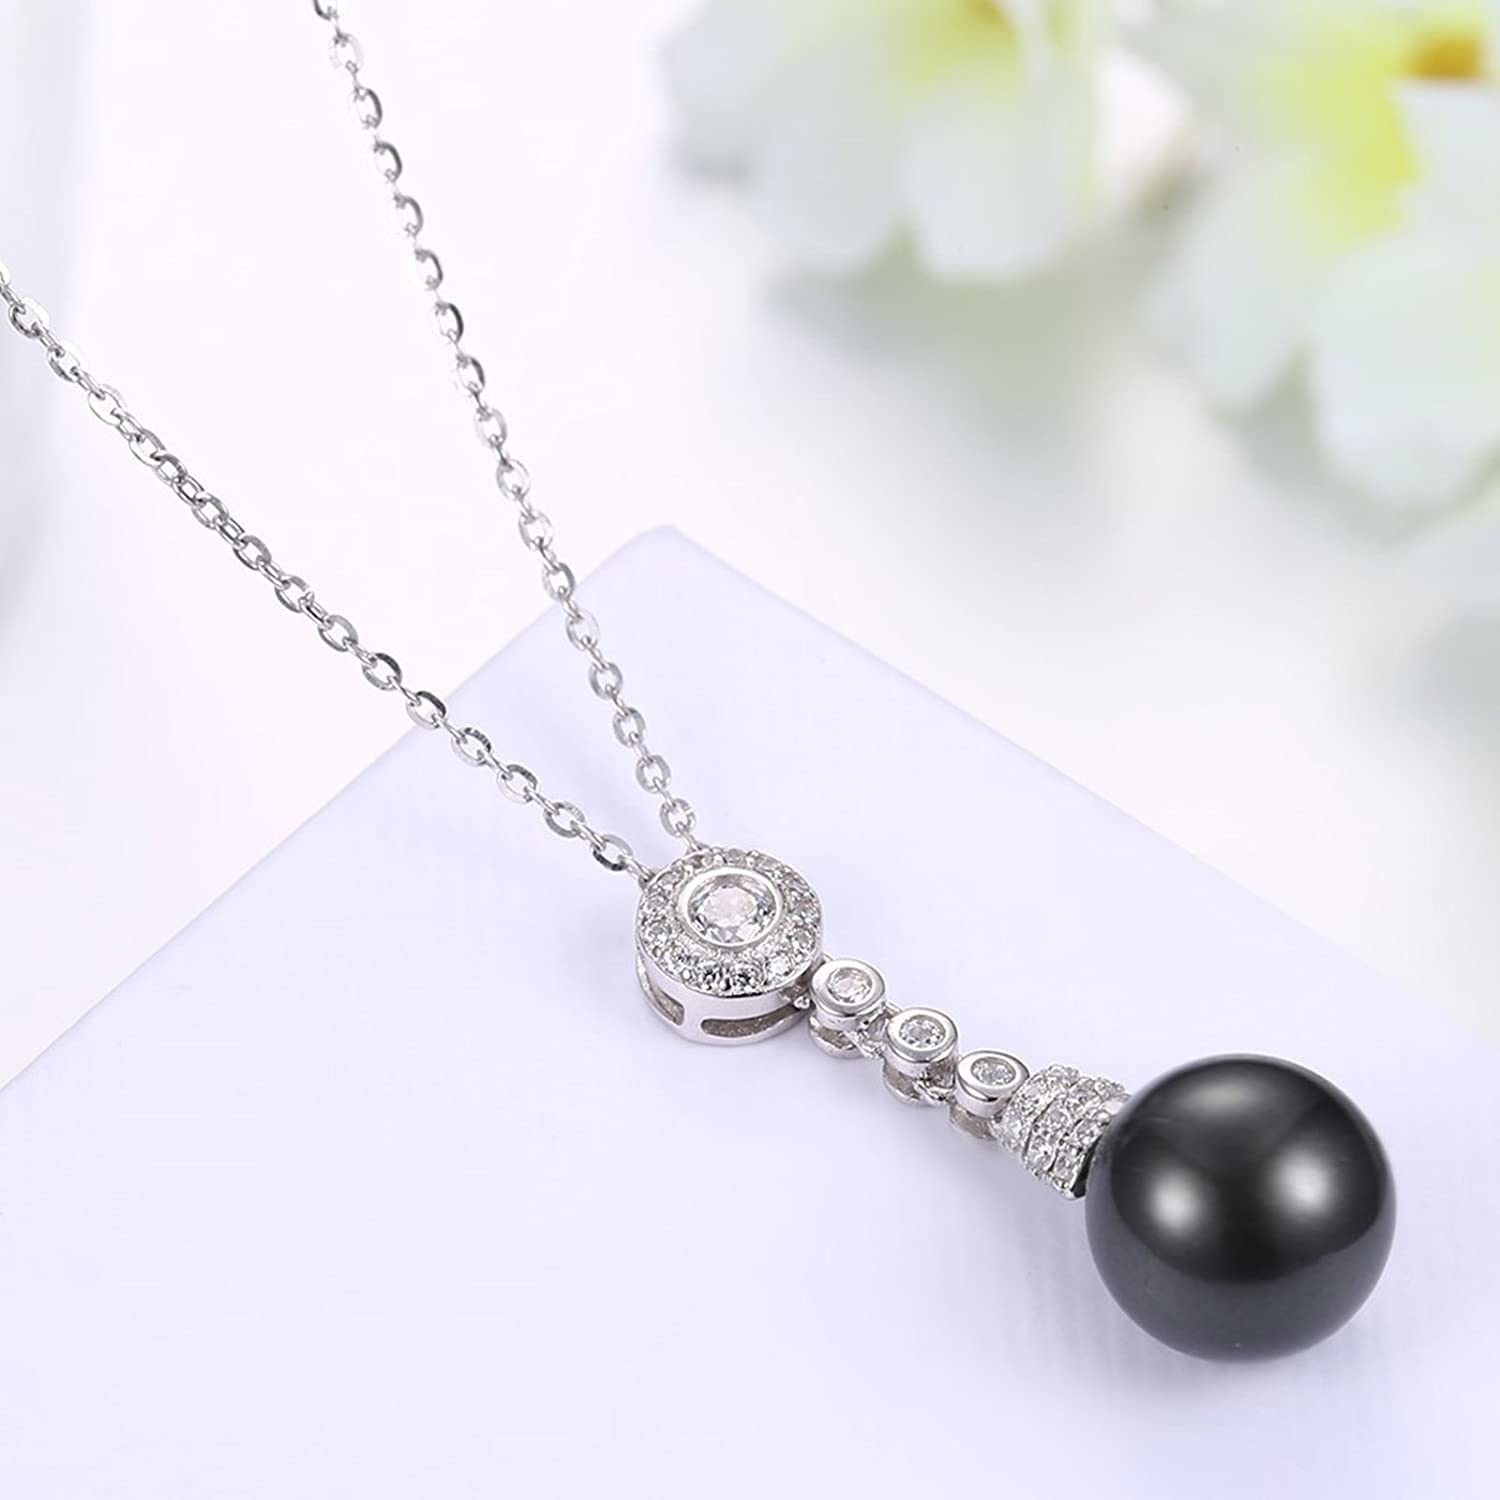 ANAZOZ S925 Sterling Silver Zirconia Necklace Women Simulated Black Pearl Pendant Necklace